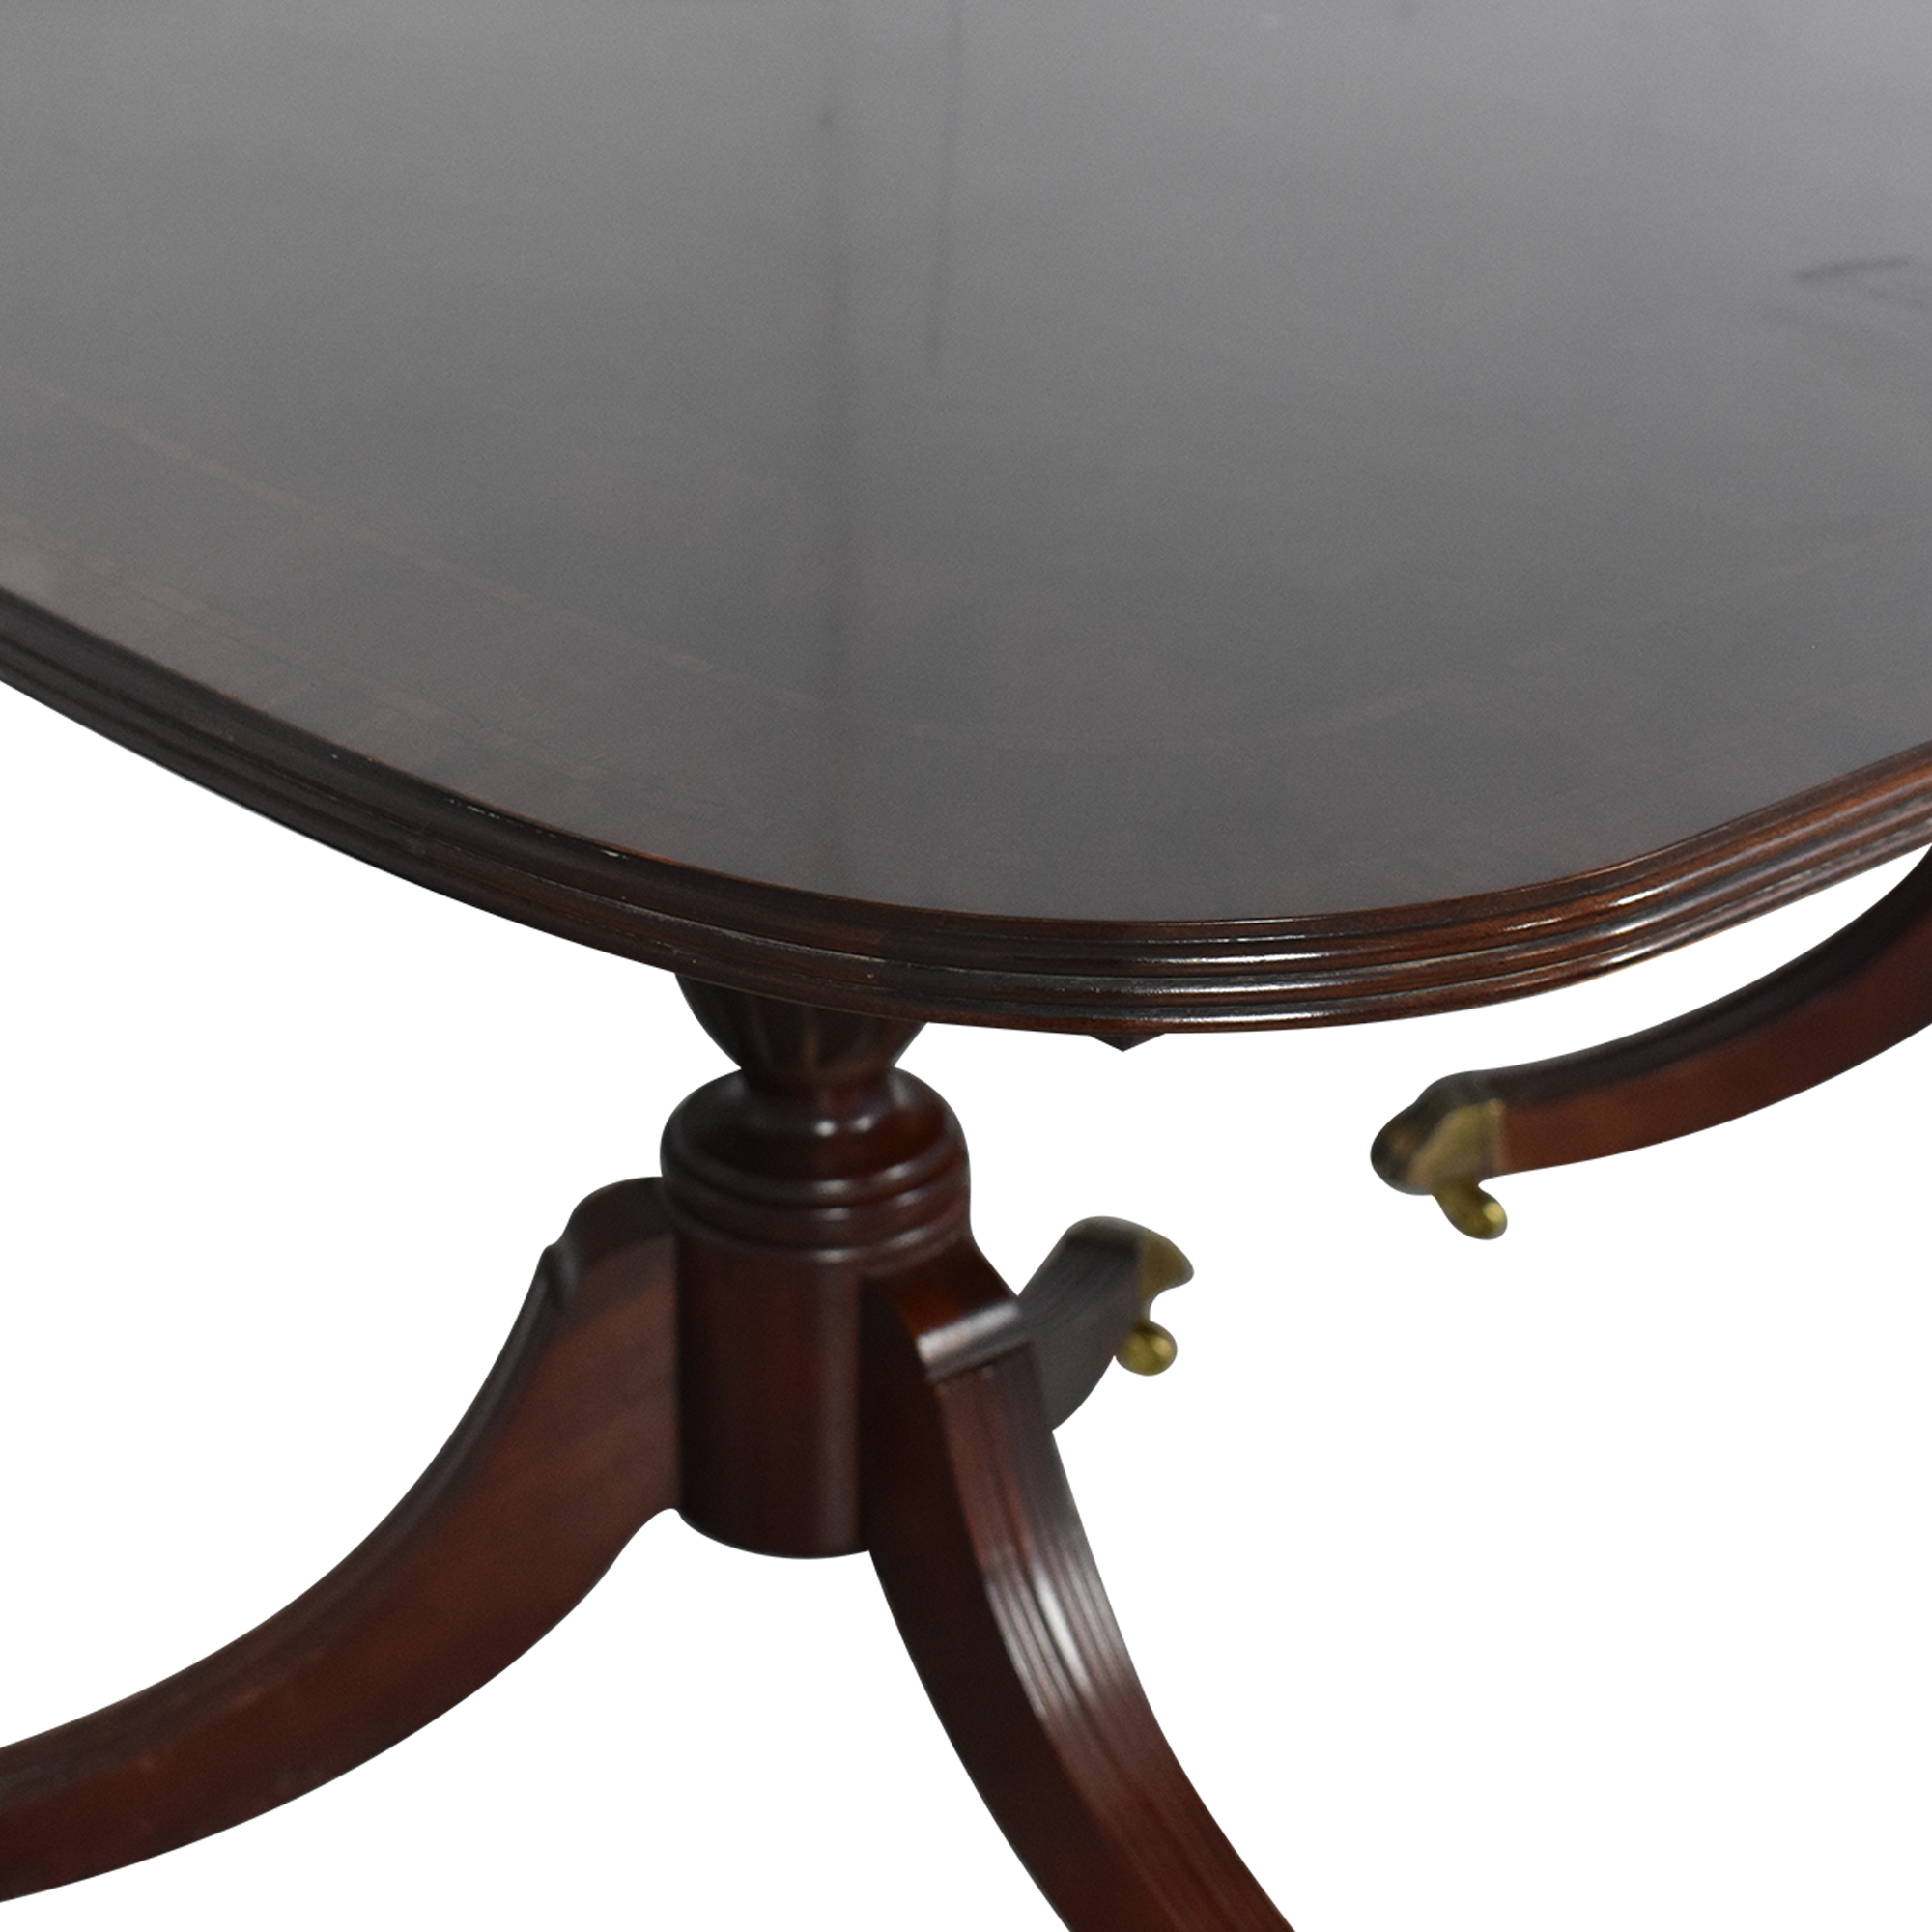 shop Thomasville Figural Duncan Phyfe-Style Dining Room Table Thomasville